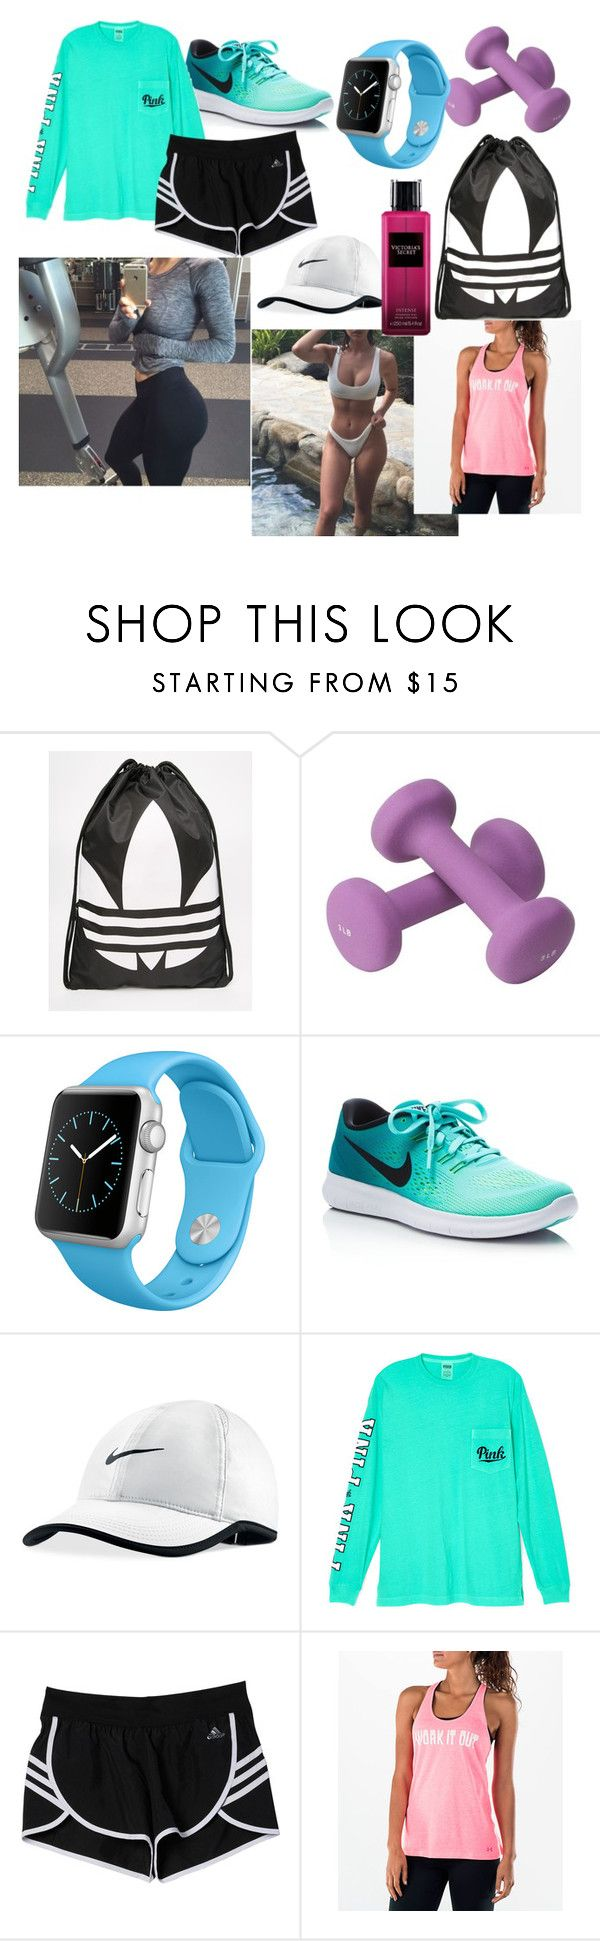 """Work out"" by isobeld-co-nz ❤ liked on Polyvore featuring adidas, Apple, NIKE, Victoria's Secret and Under Armour"